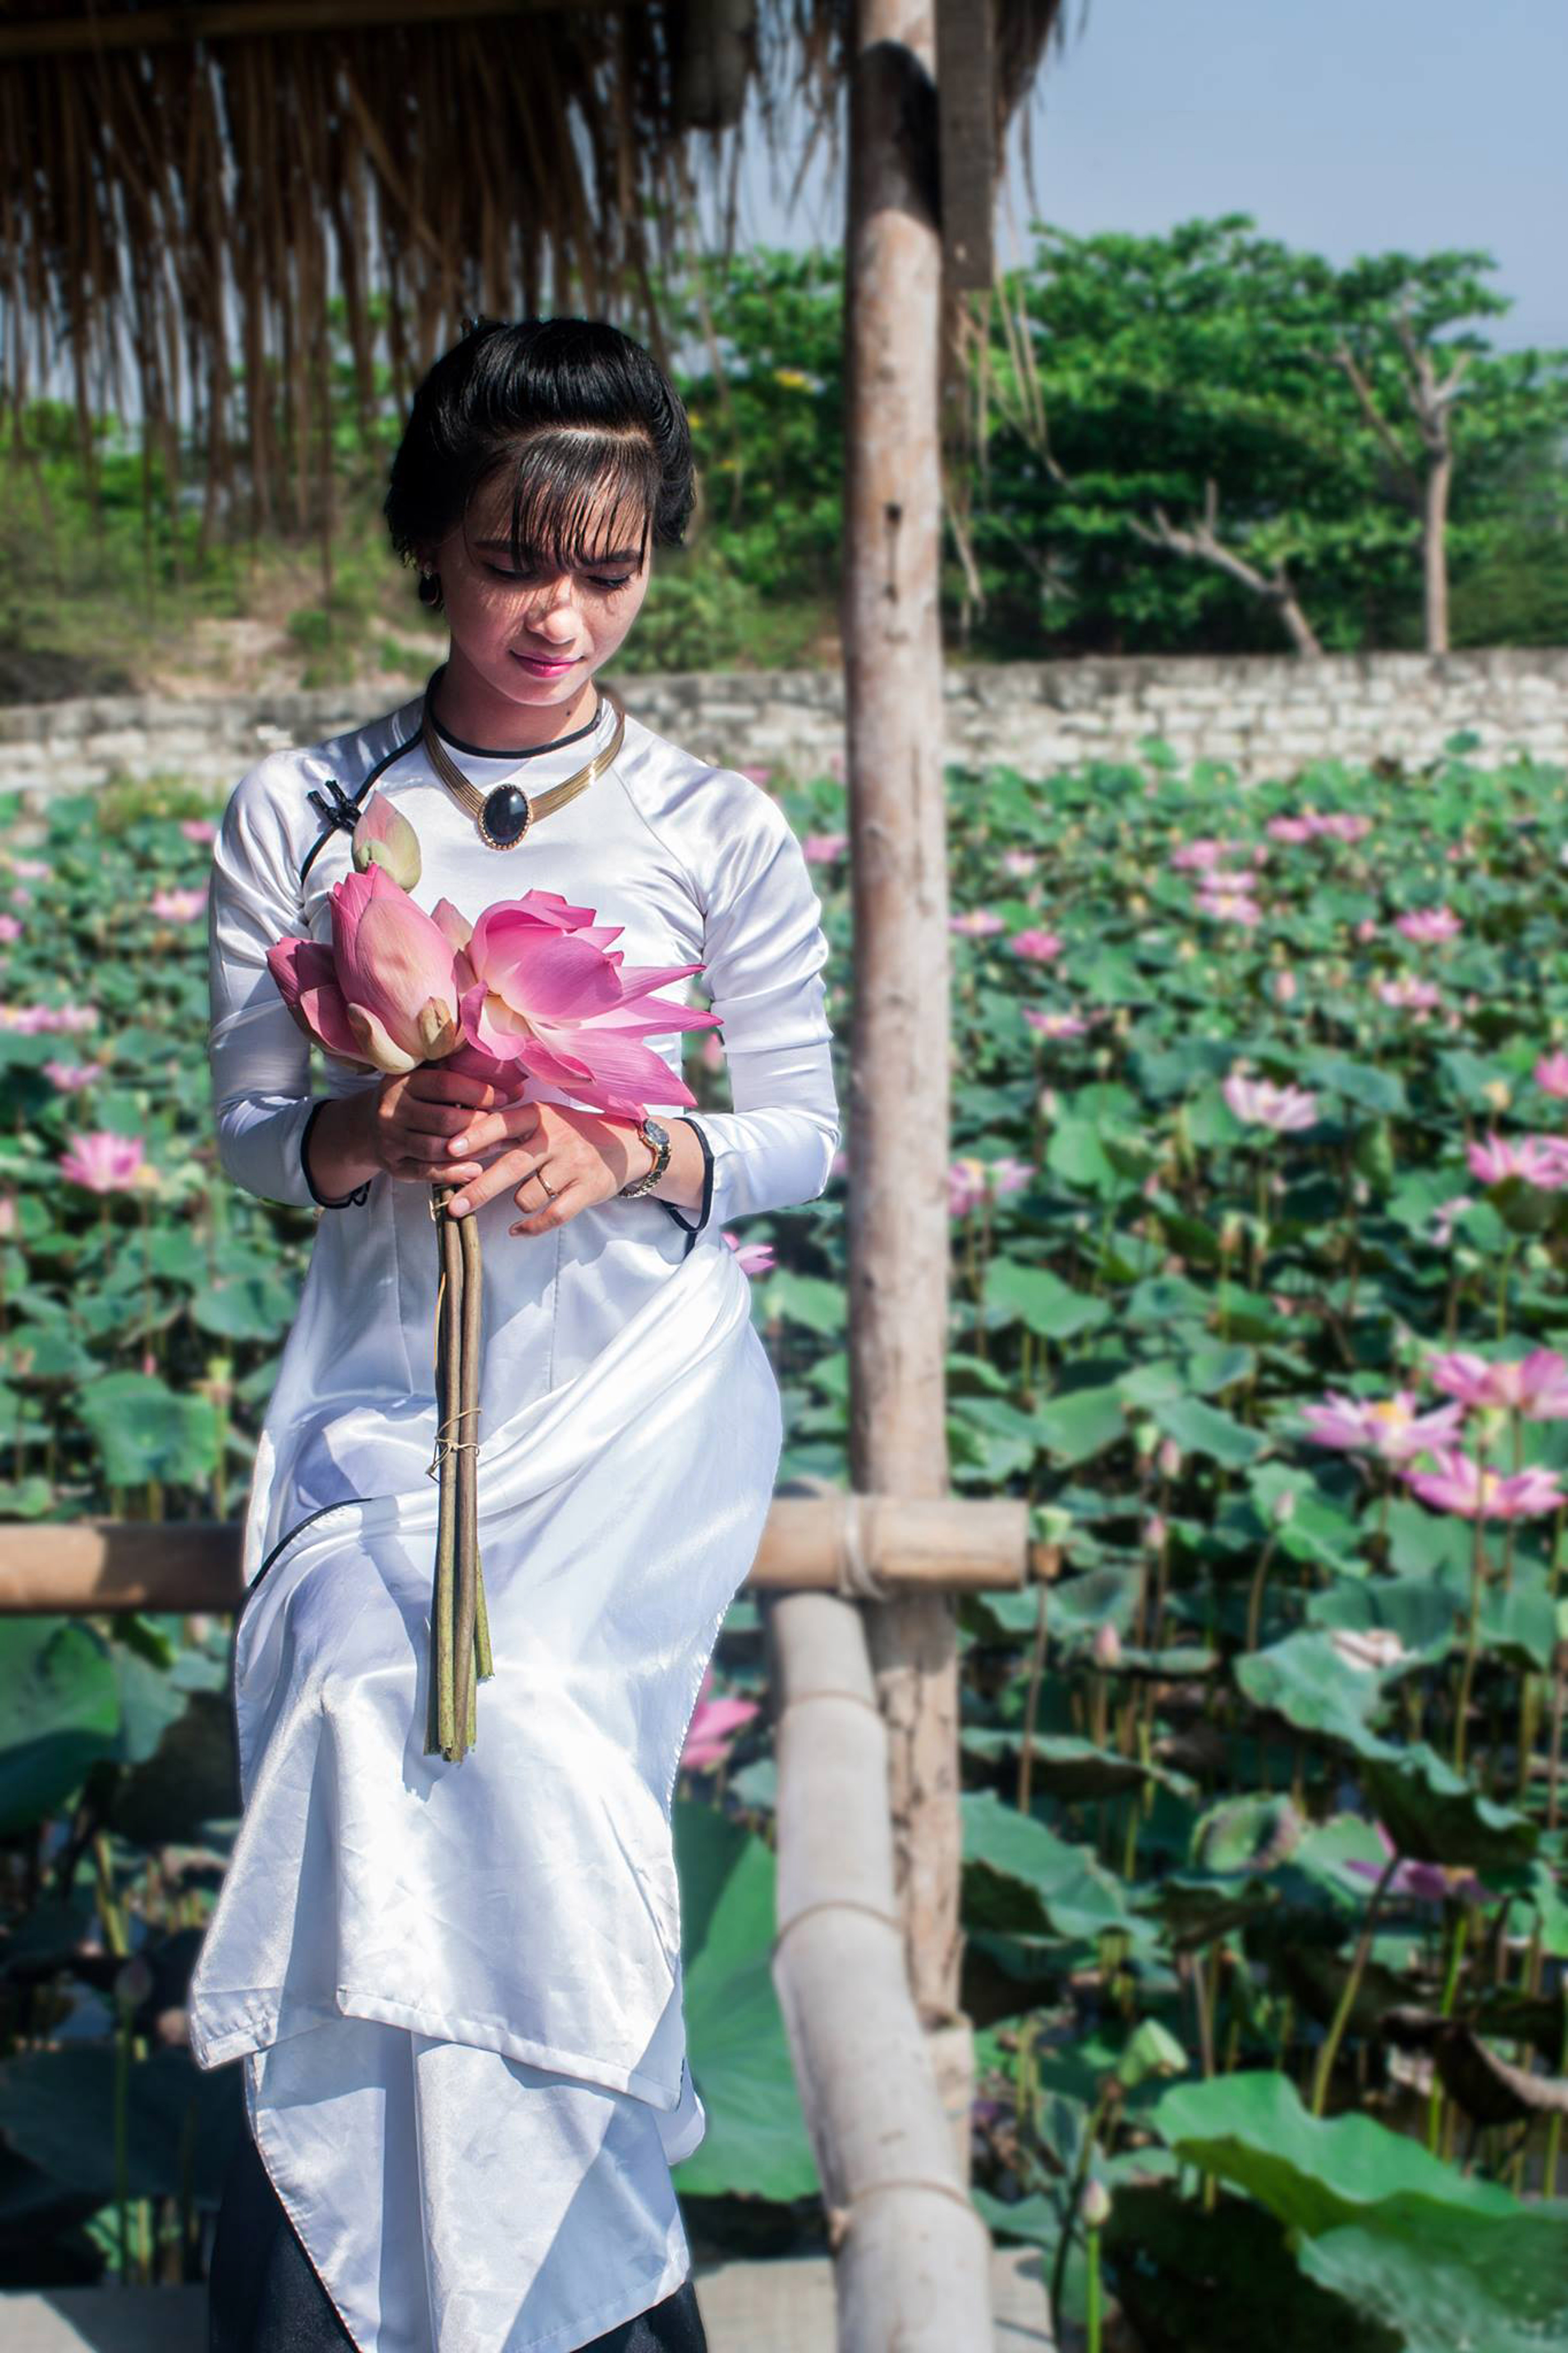 Bride In White And Roses In Vietnam Image Free Stock